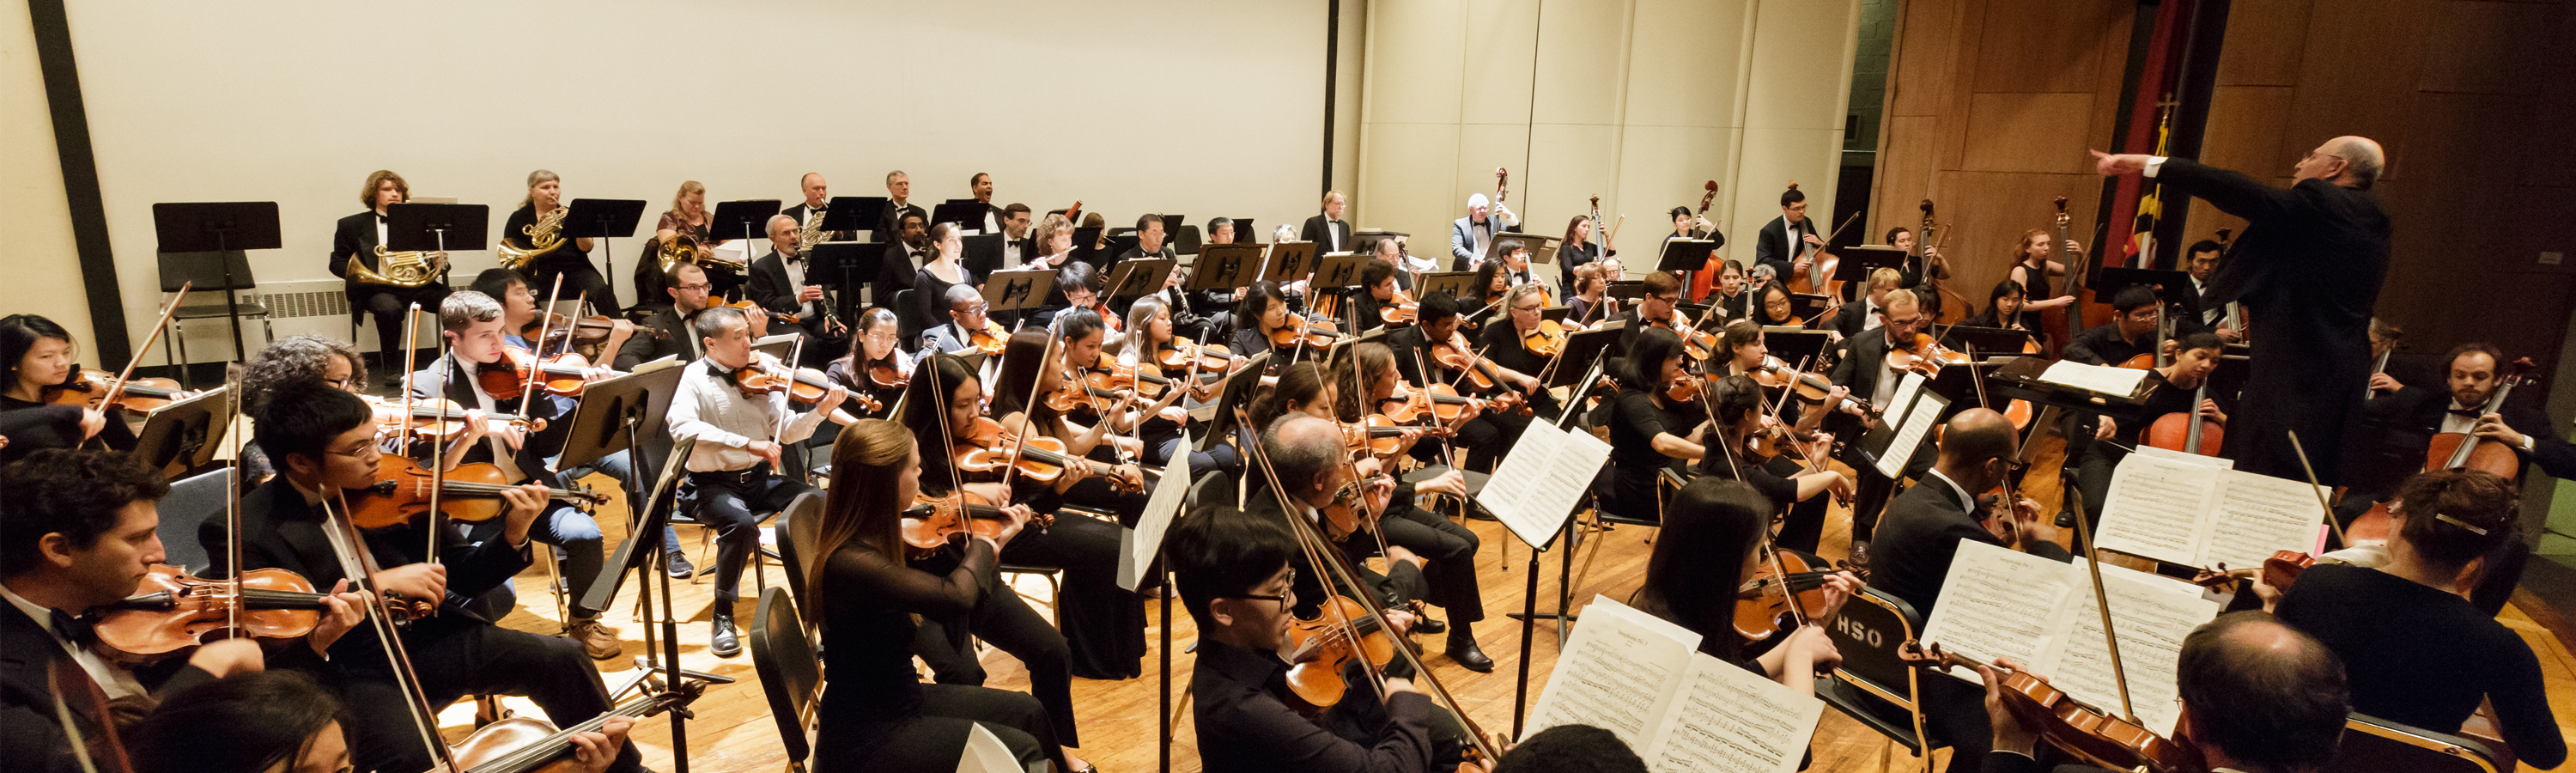 Image for Hopkins Symphony Orchestra Evenings Part II - Symphonie Fantastique: Pipe Dreams and Obsessions webinar